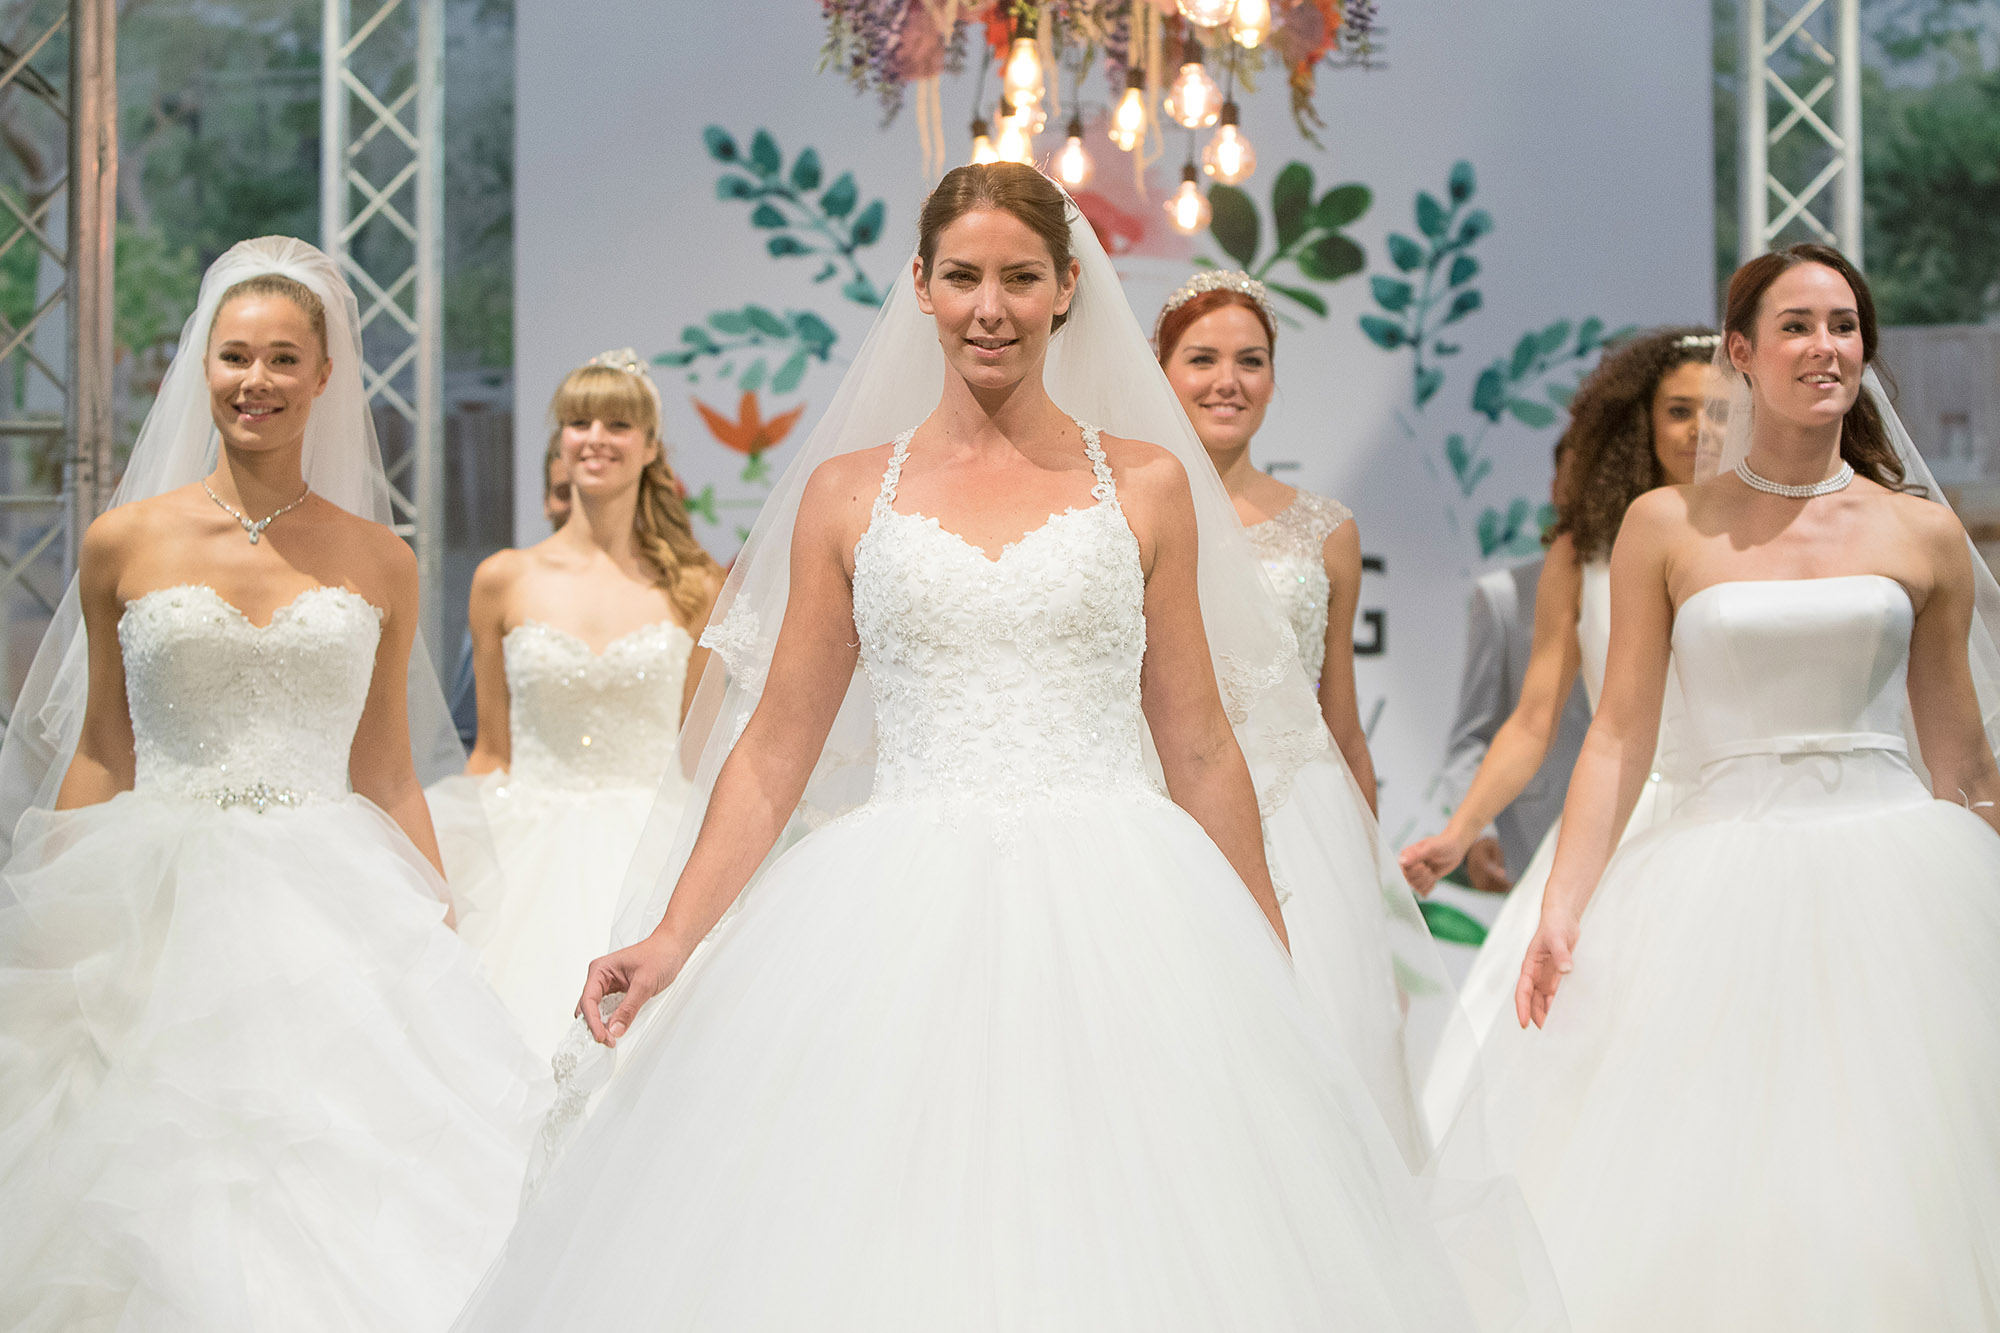 trouwbeurs nationale weddingshow trouwjurk utrecht 2017 2018 love and marriage